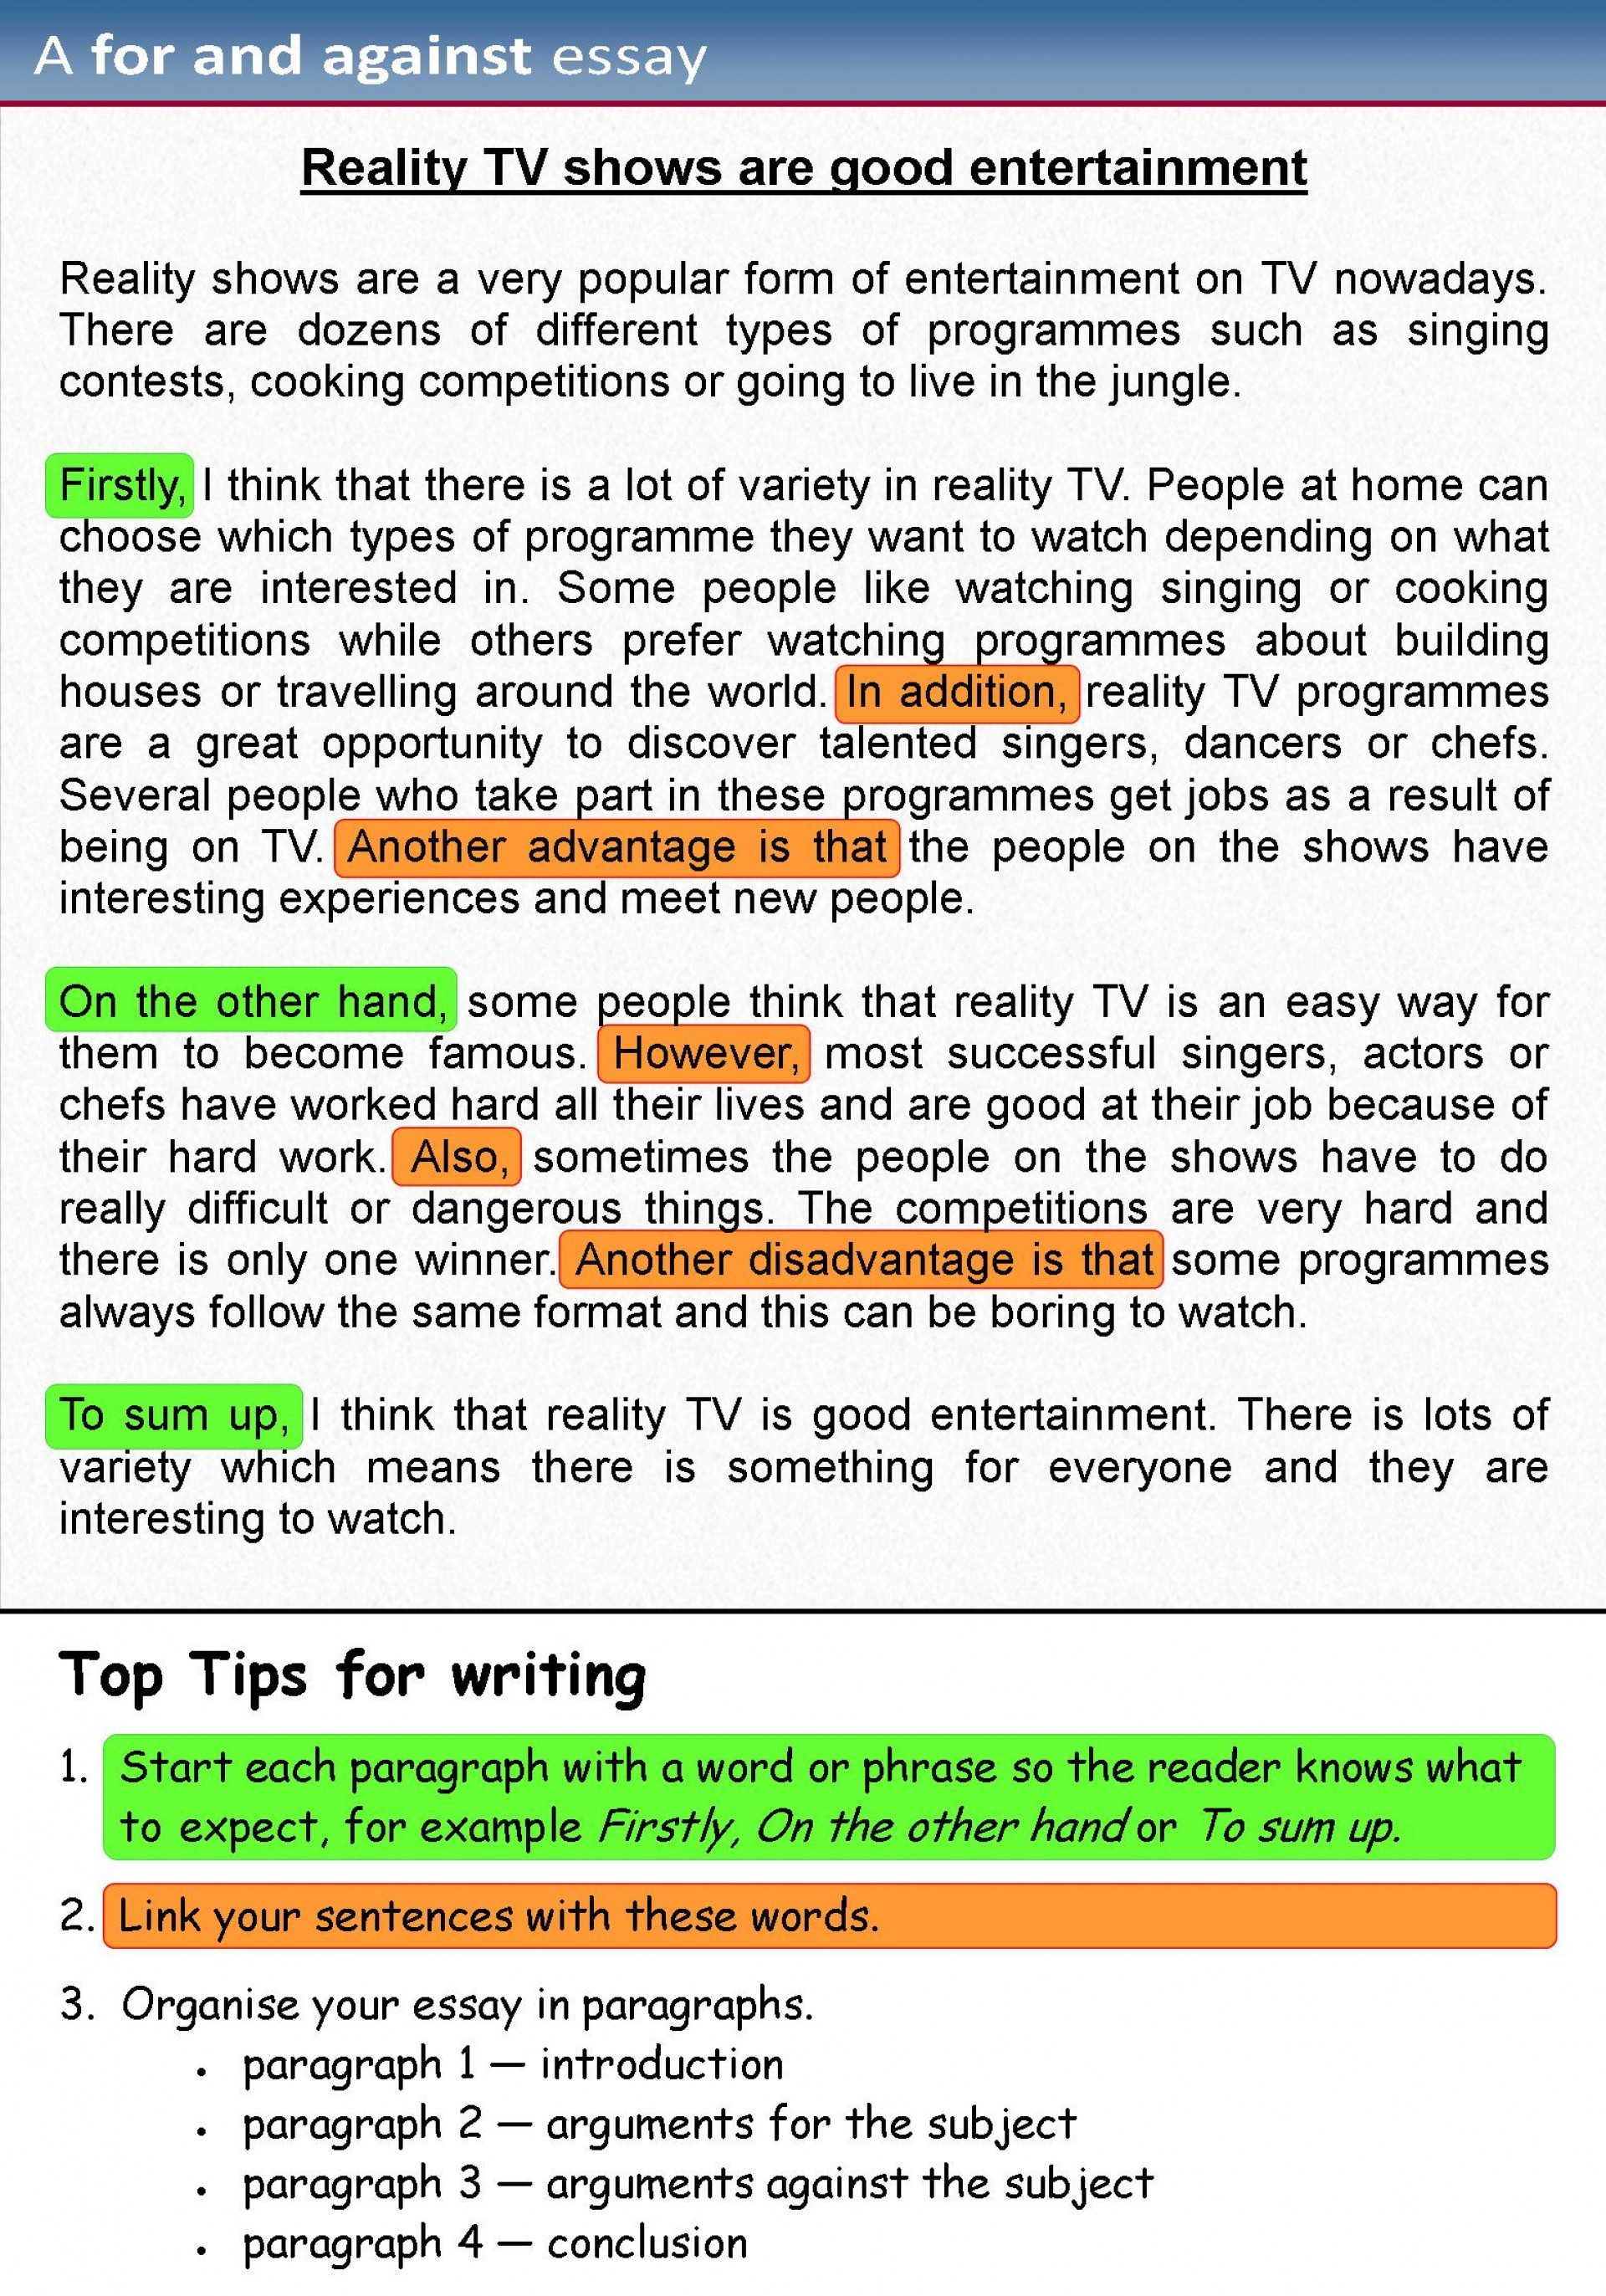 019 Essay Example How To Write And For Against 1 Unique An Paper In Apa Format Conclusion Mla 1920